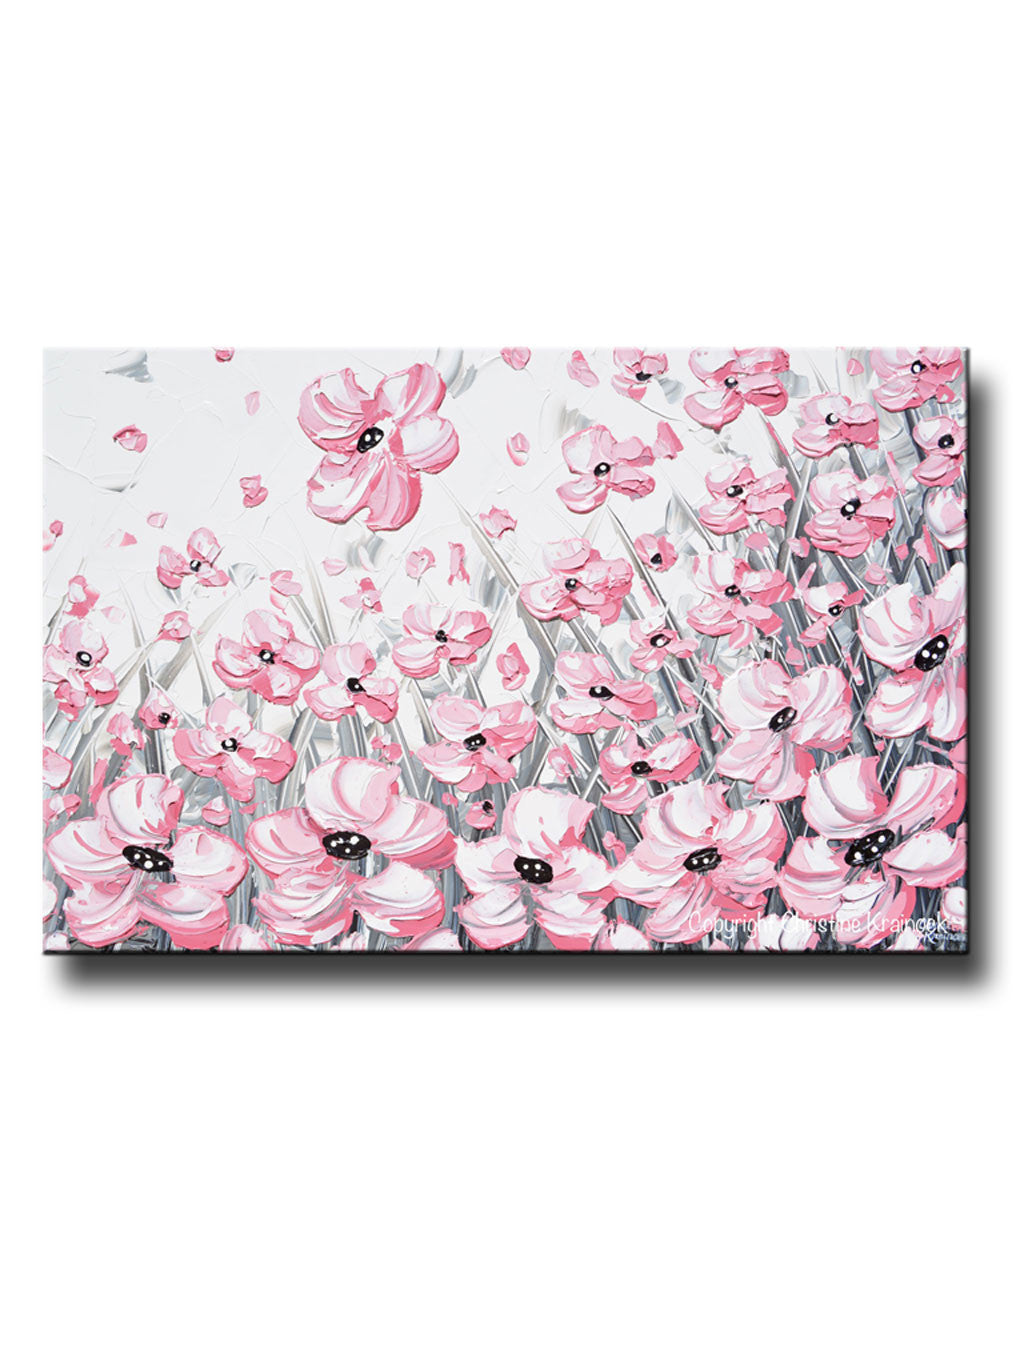 Giclee Print Abstract Painting Pink Poppies Flowers Grey White